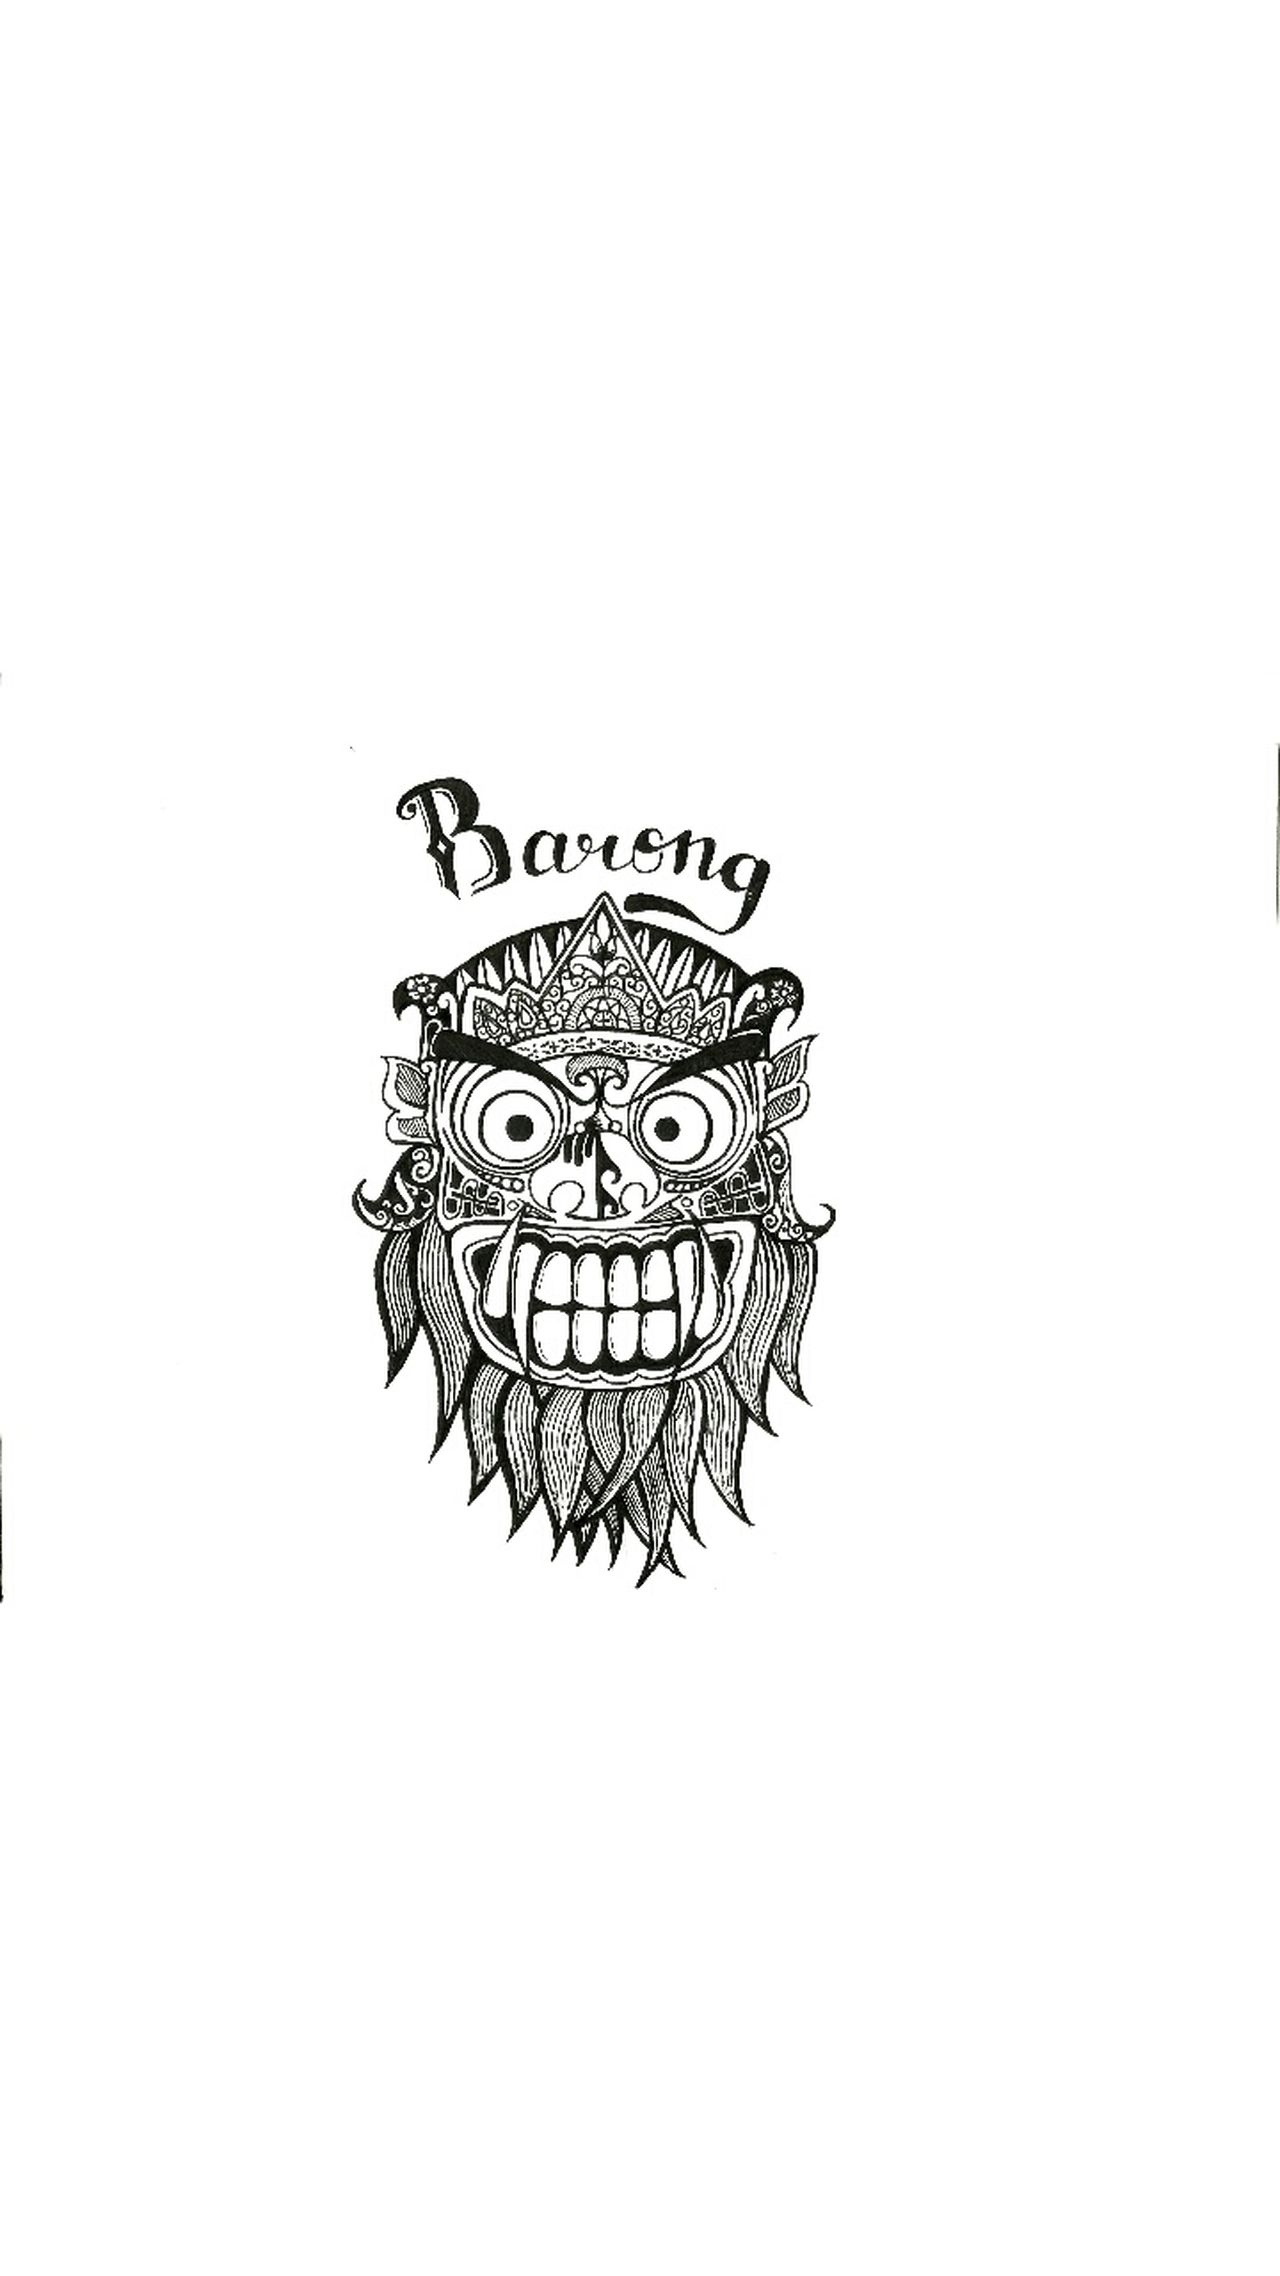 Barong Folk INDONESIA Indonesian Ink Drawing - Art Product Paper Drawings Art ArtWork Drawing ✏ Black Black & White Ghost Cultures Bali Balinese White Background